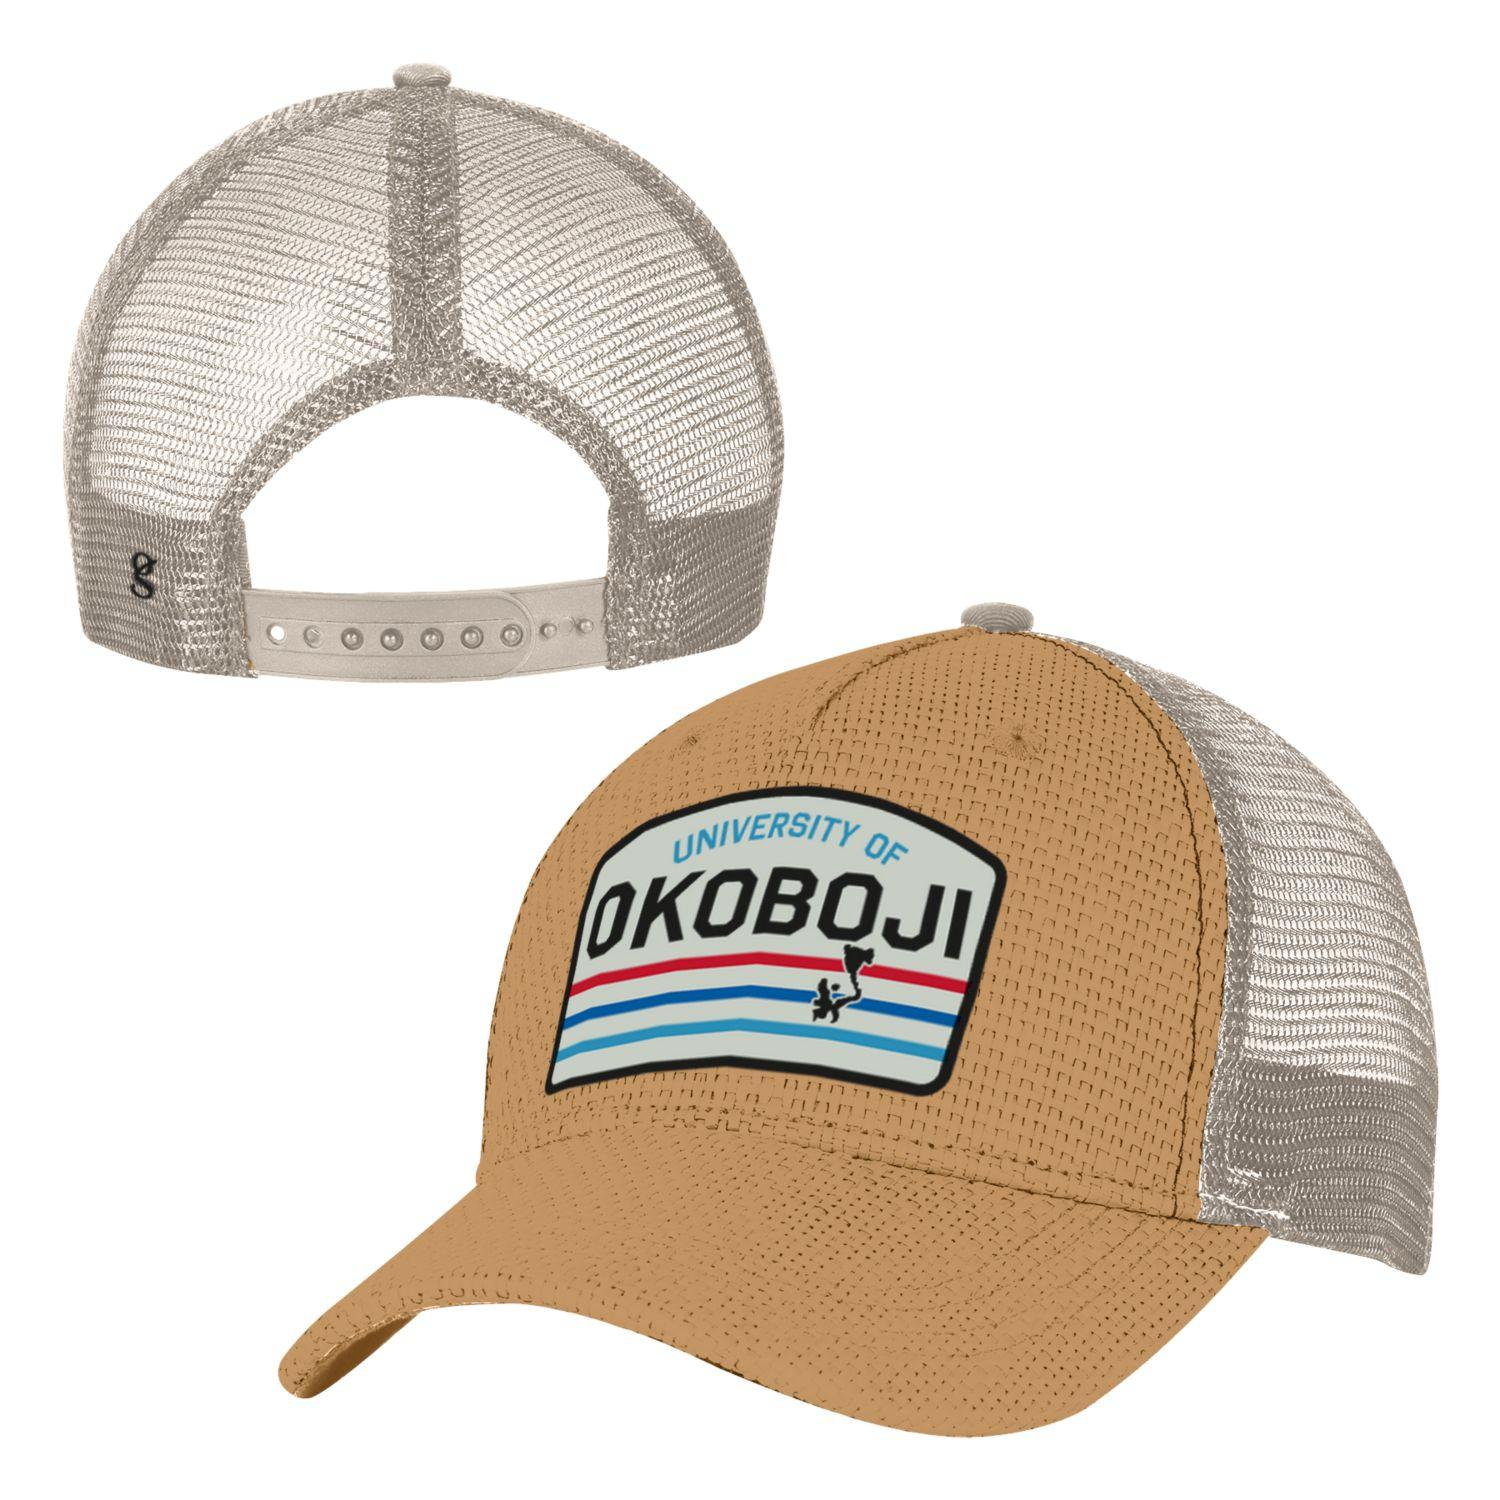 U of Okoboji Beach Trucker - Sand color